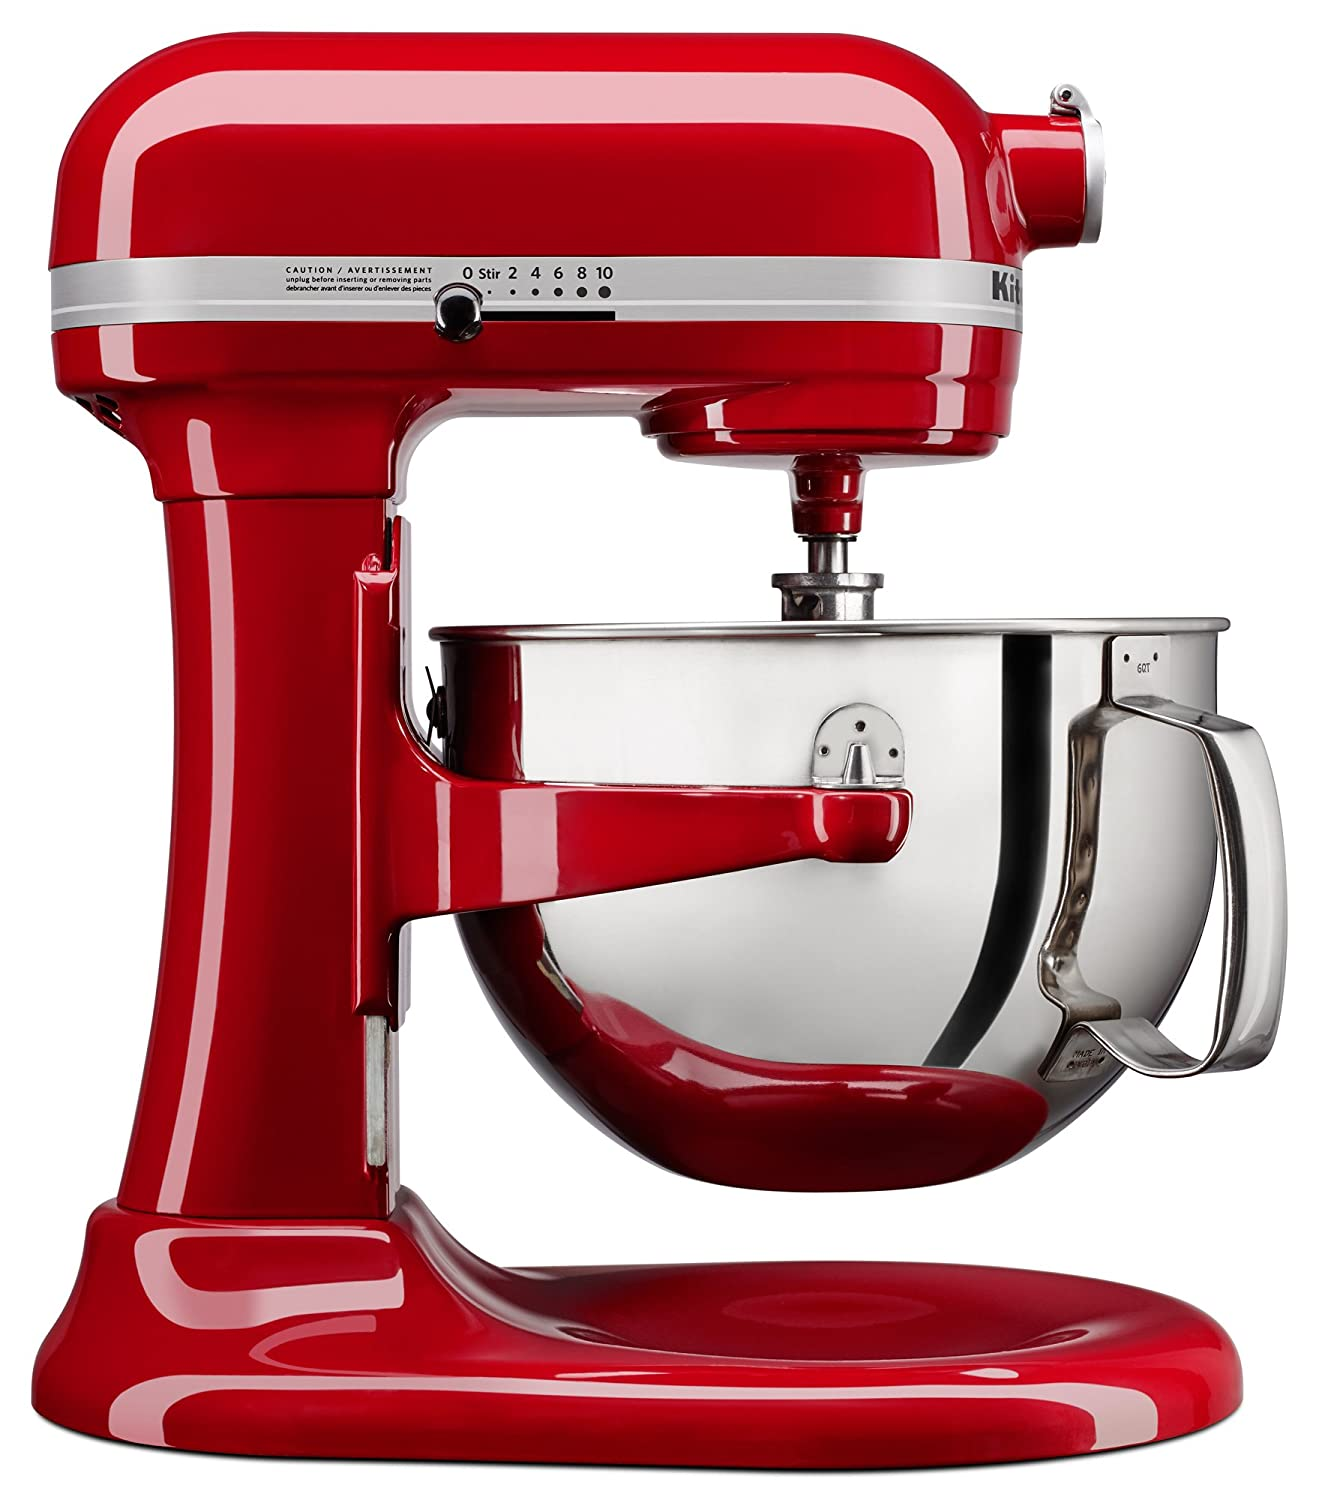 stand maker ice compactappliance attachments best com have cream must kitchenaid mixer aide kitchen